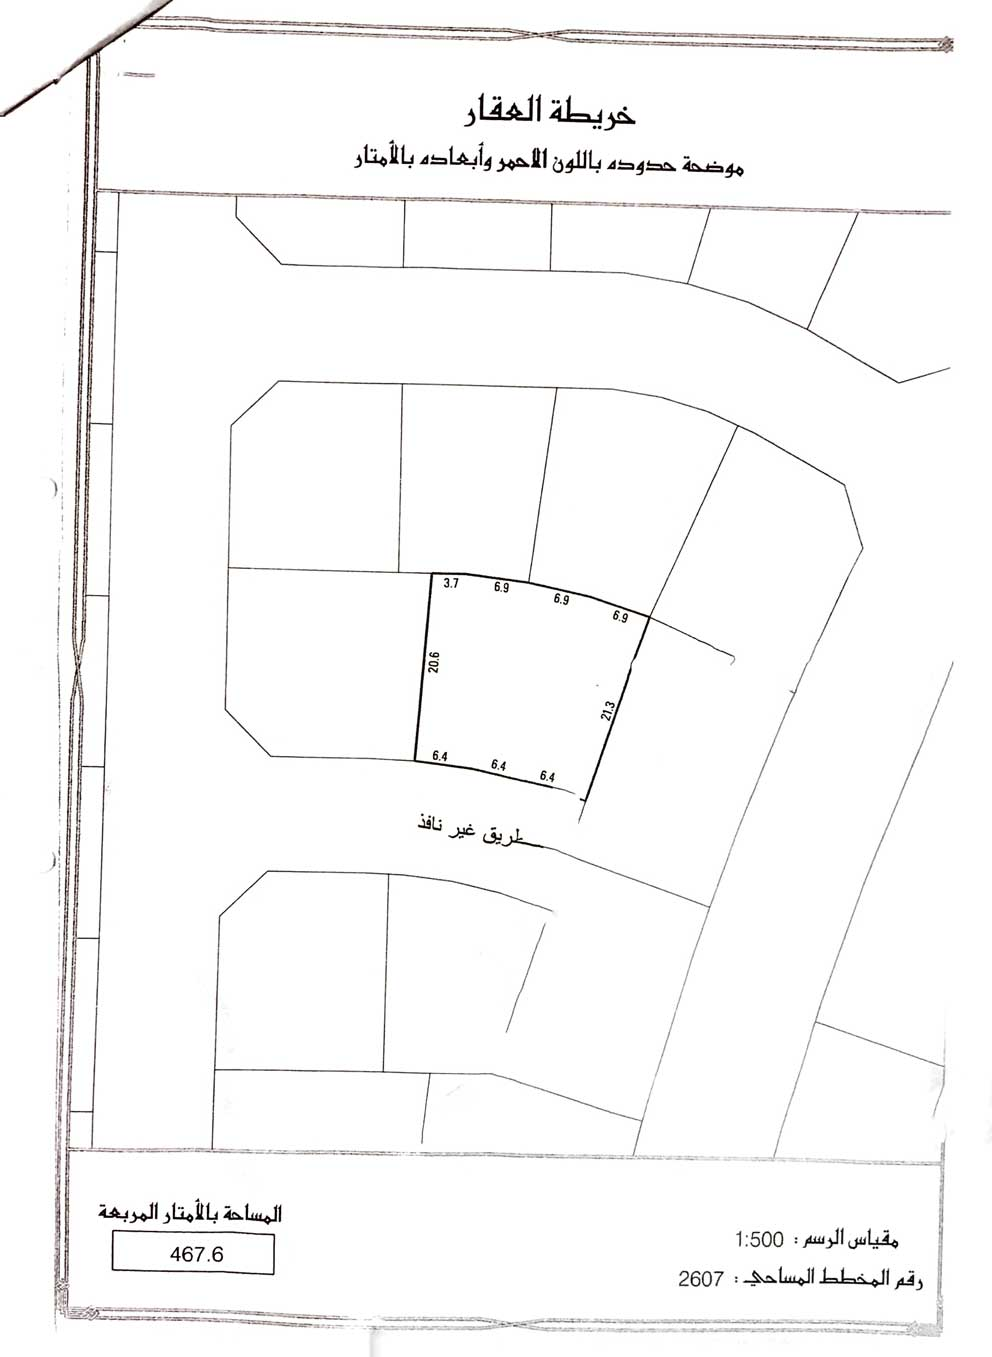 For sale residential land in North Riffa. Ref: RIF-MH-028